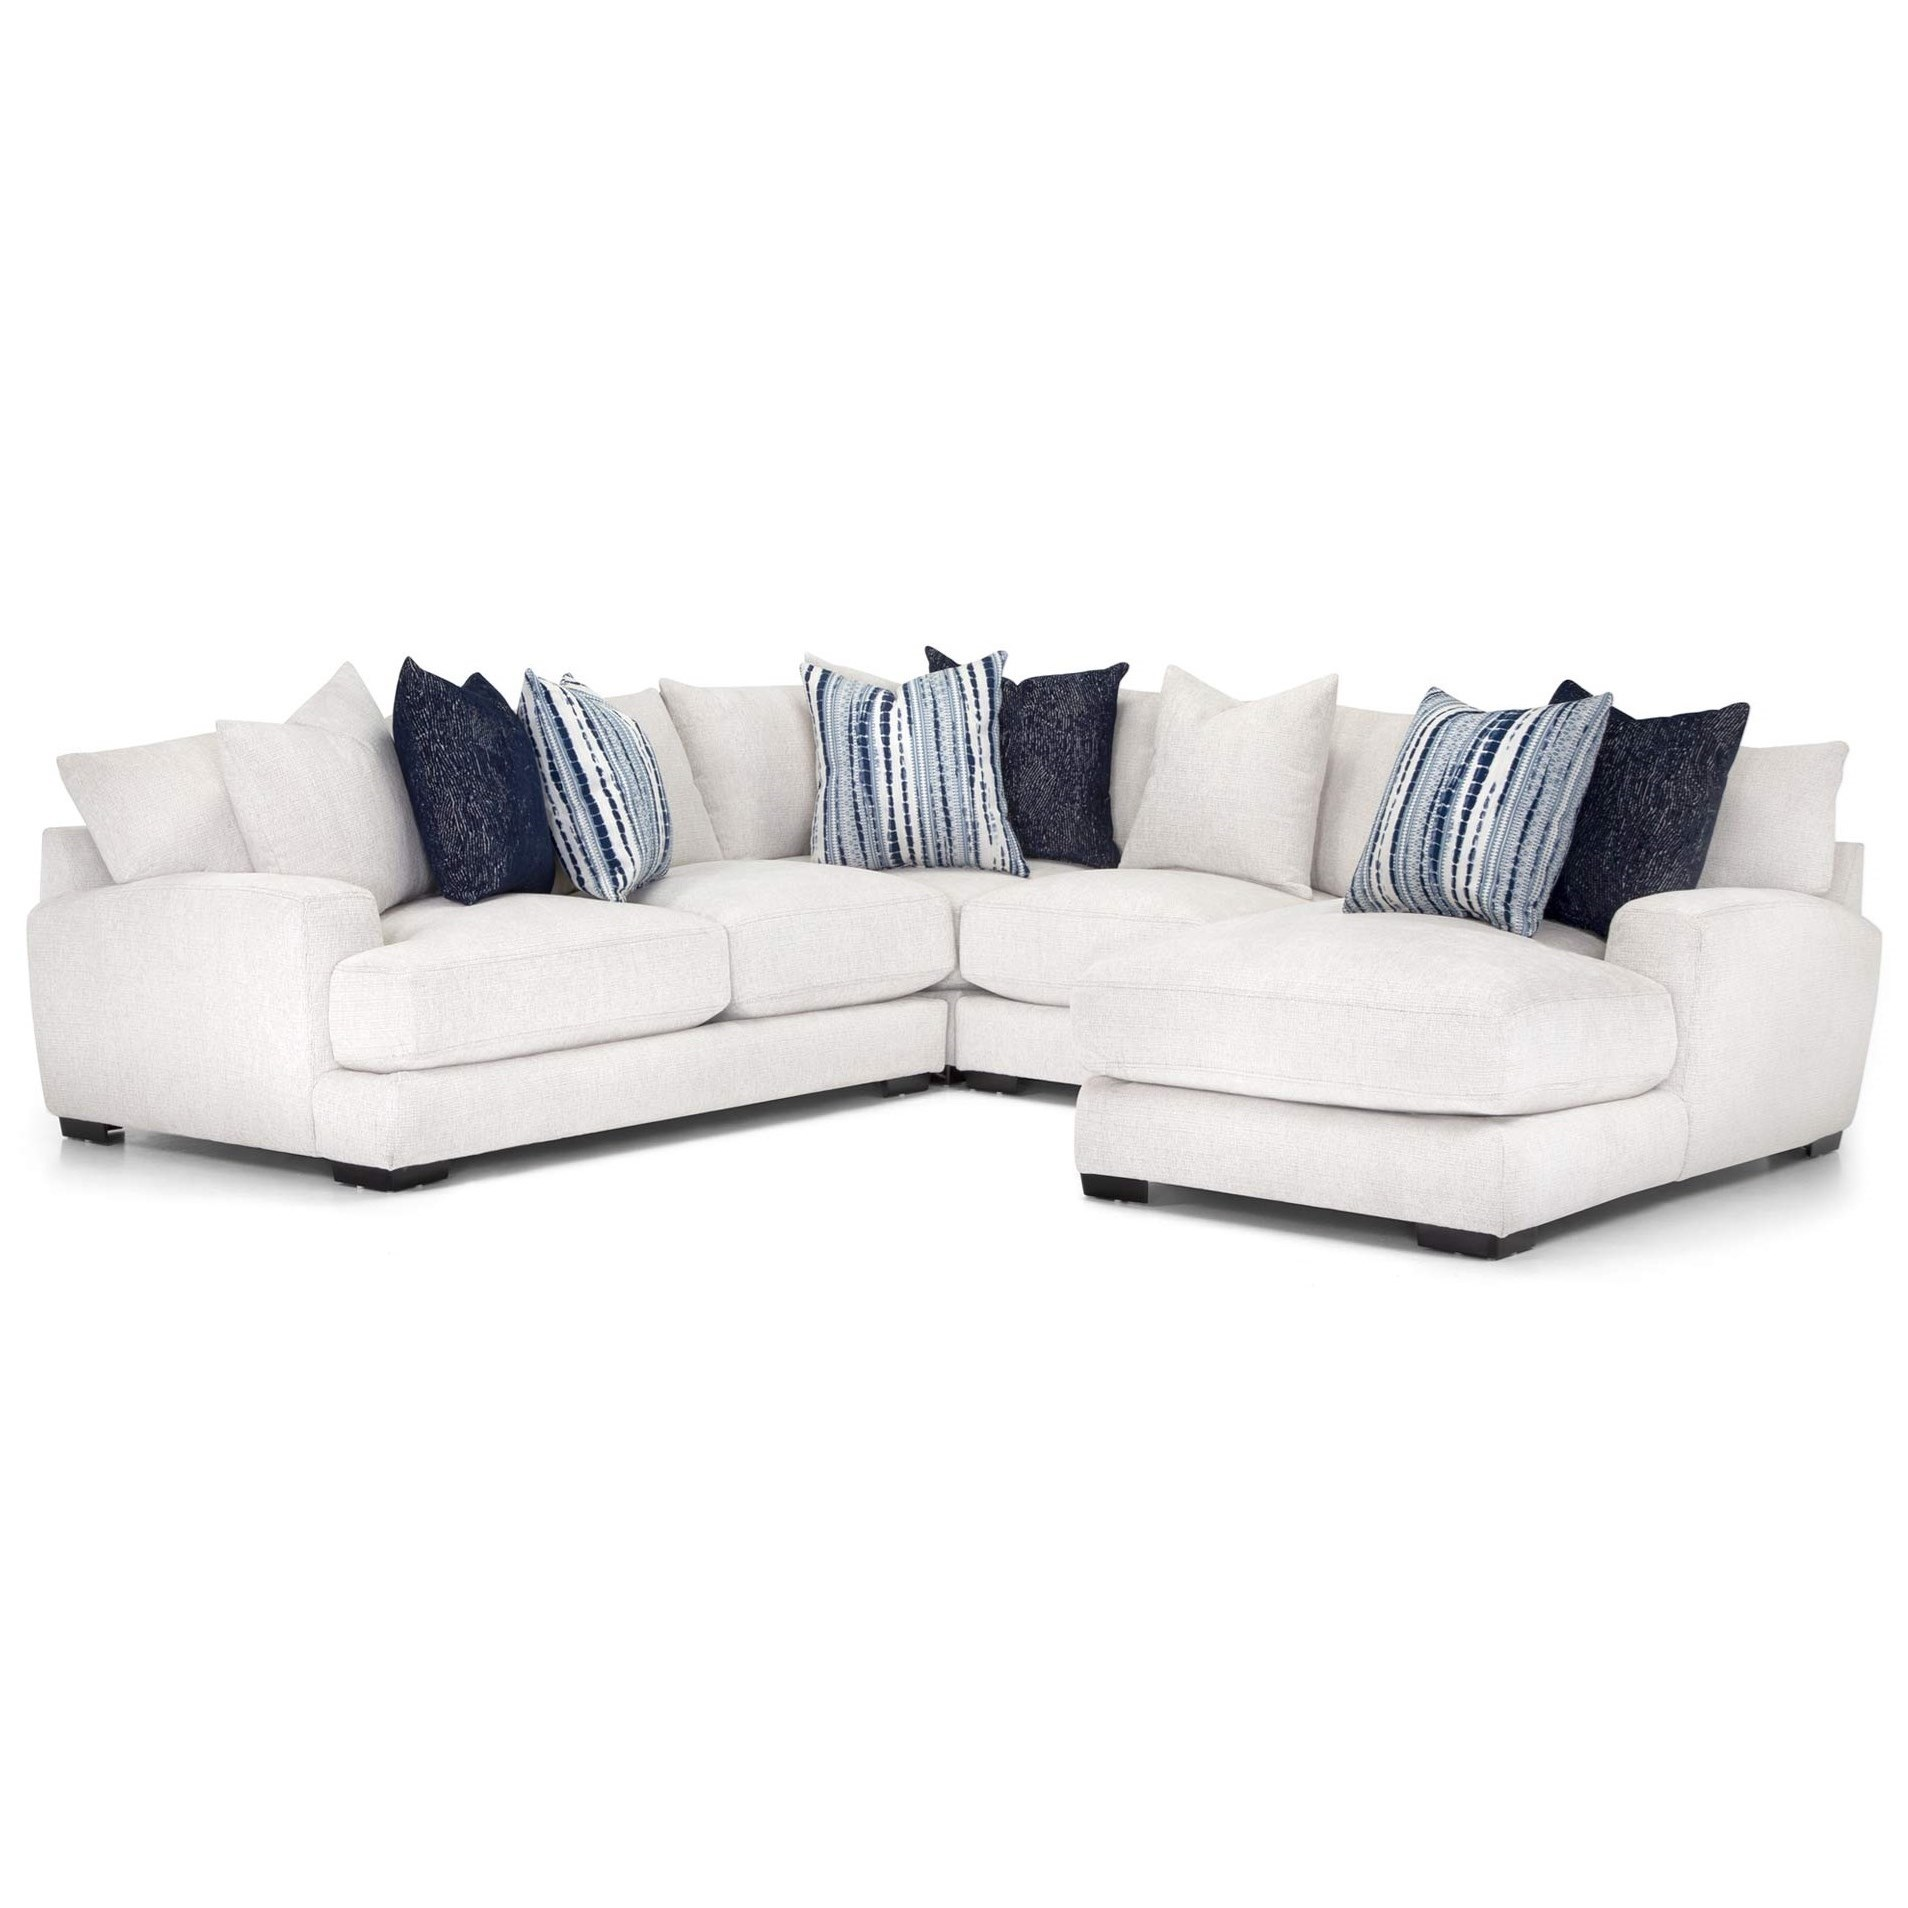 903 Sectional Sofa by Franklin at Virginia Furniture Market